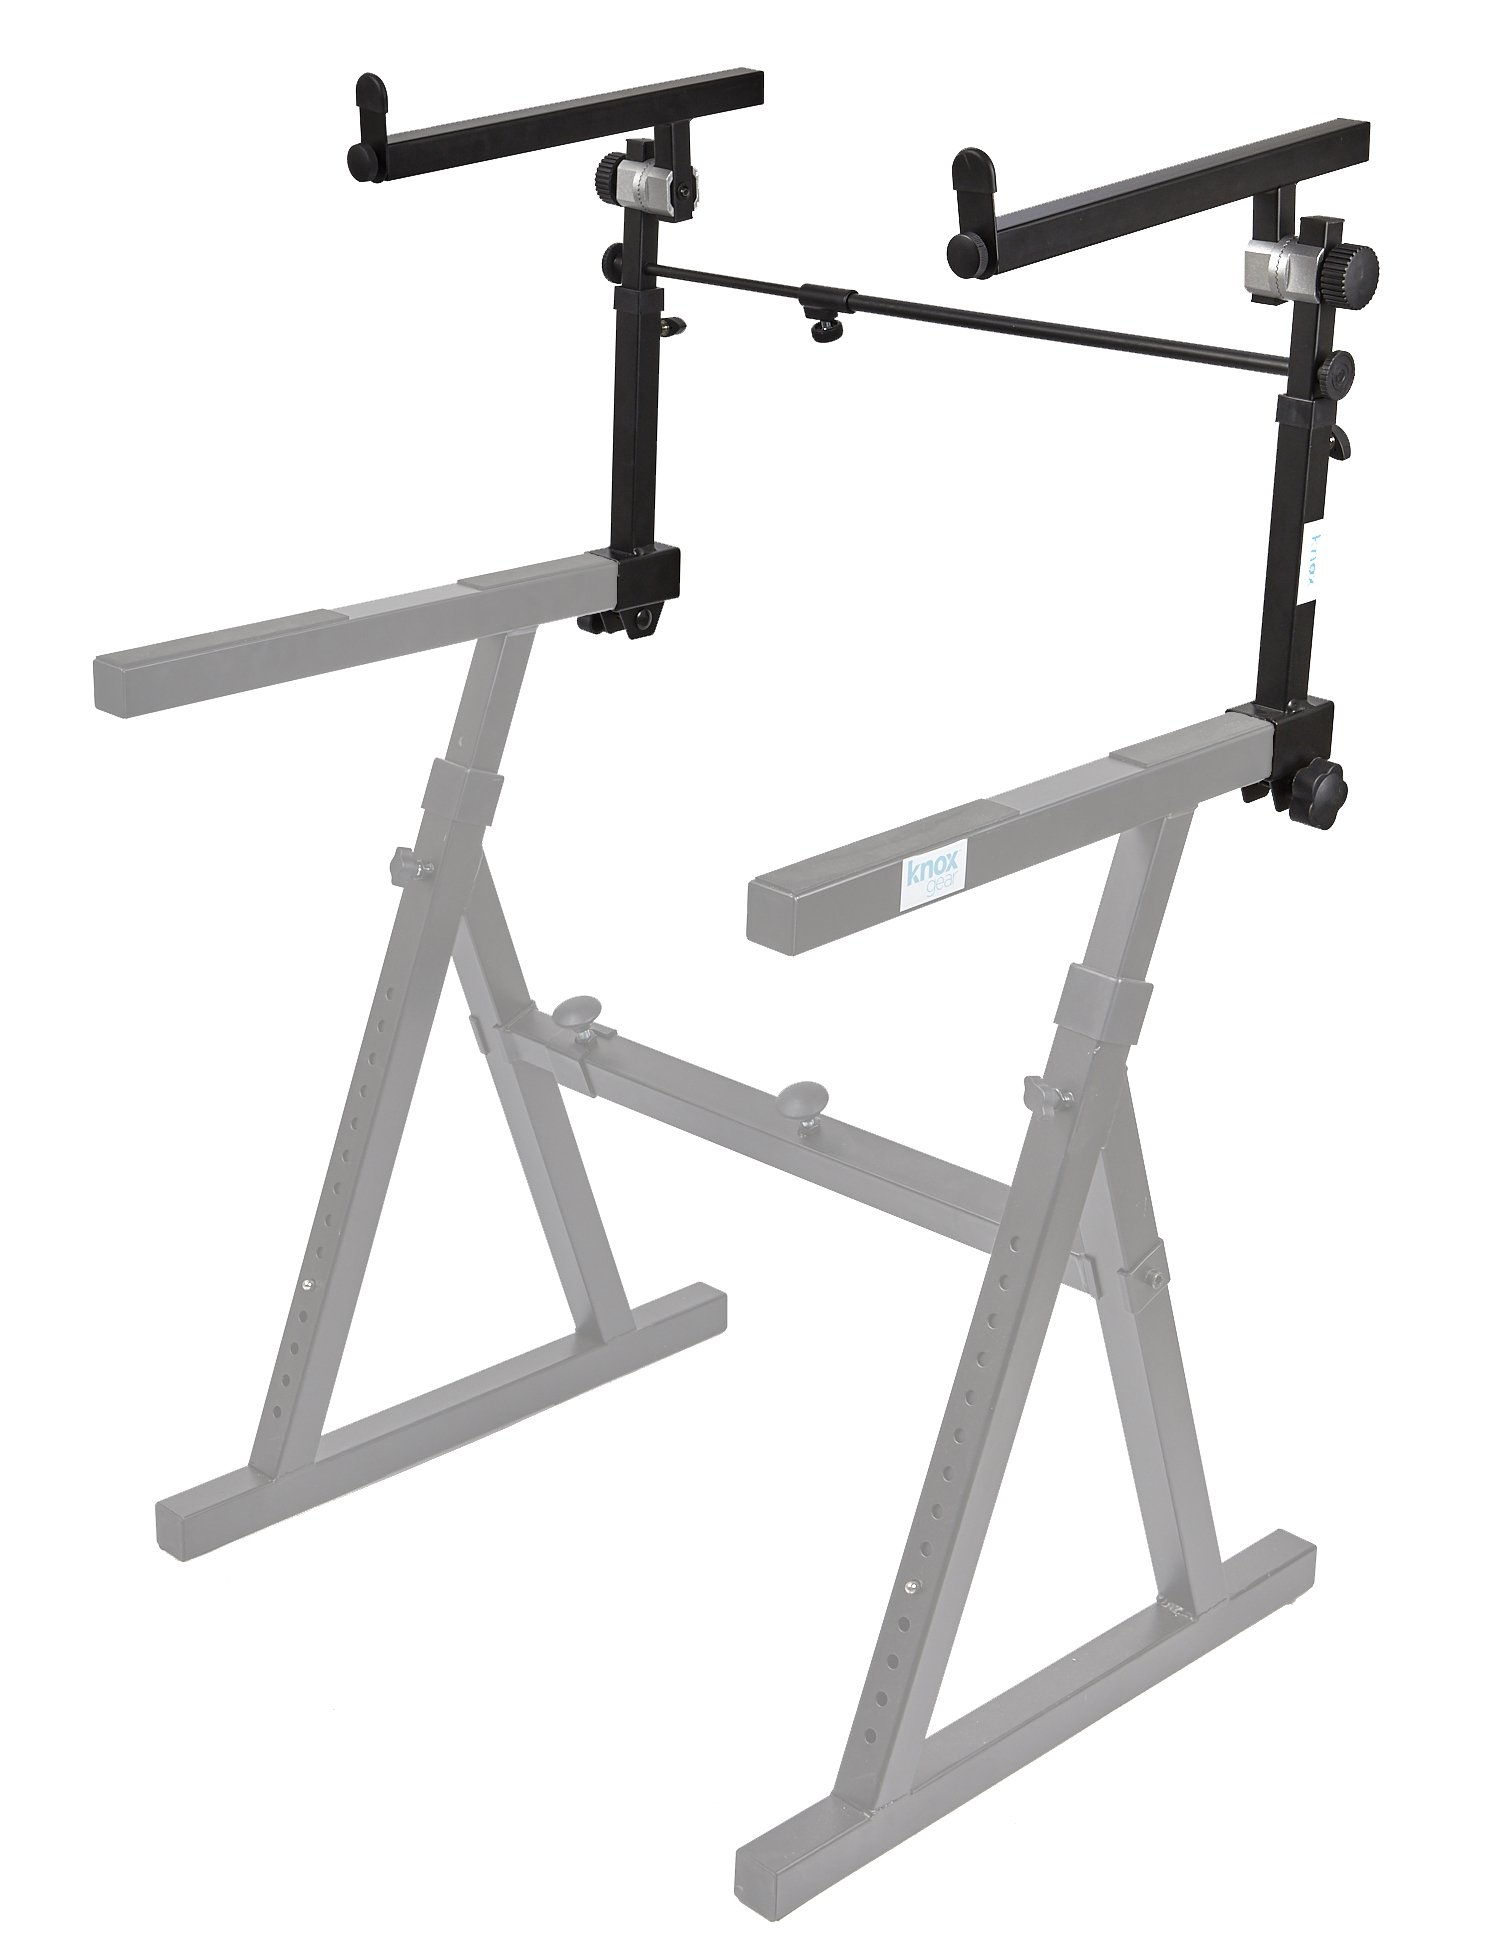 Knox Second Tier for Z Keyboard Stand – Detachable 2nd Level for Knox Z Style Piano Stand - Adjustable Height and Width(Stand Sold Separately)